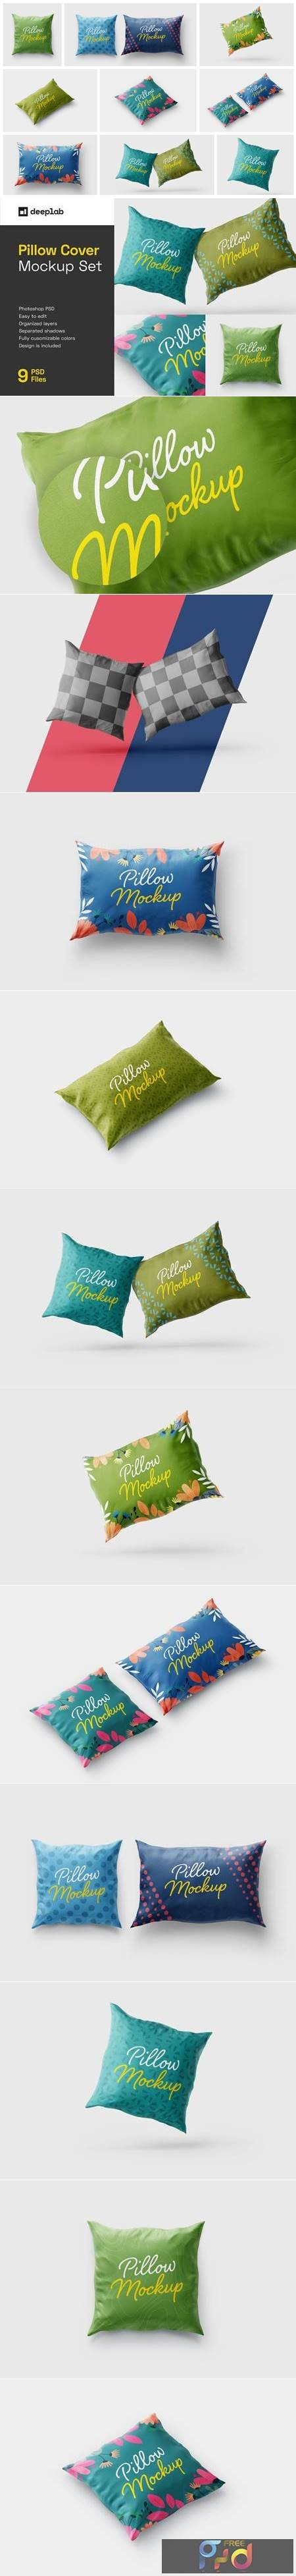 Pillow Cover Mockup Set - Textile 5715540 1